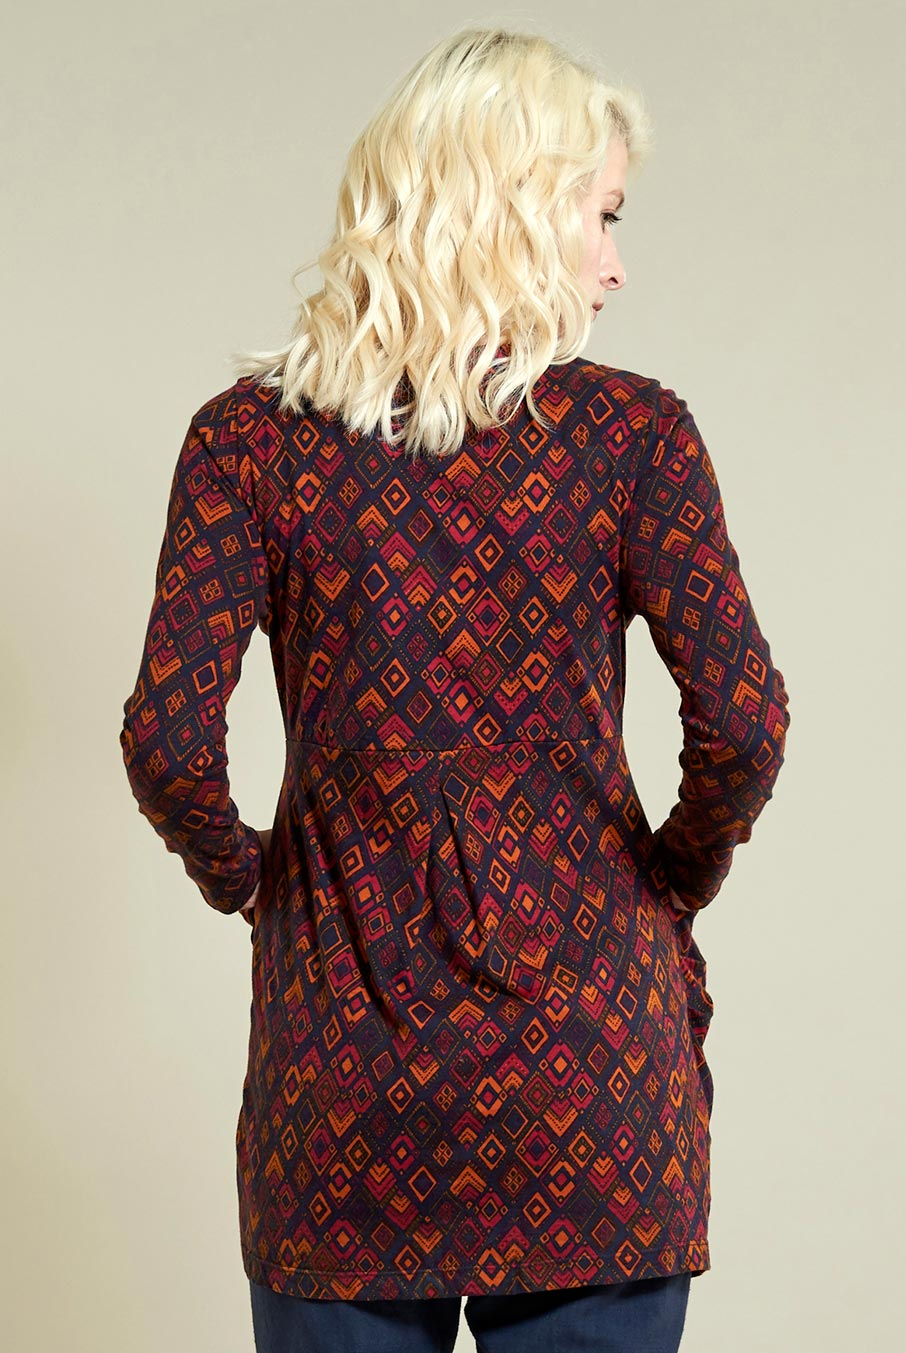 Prism Tunic Top